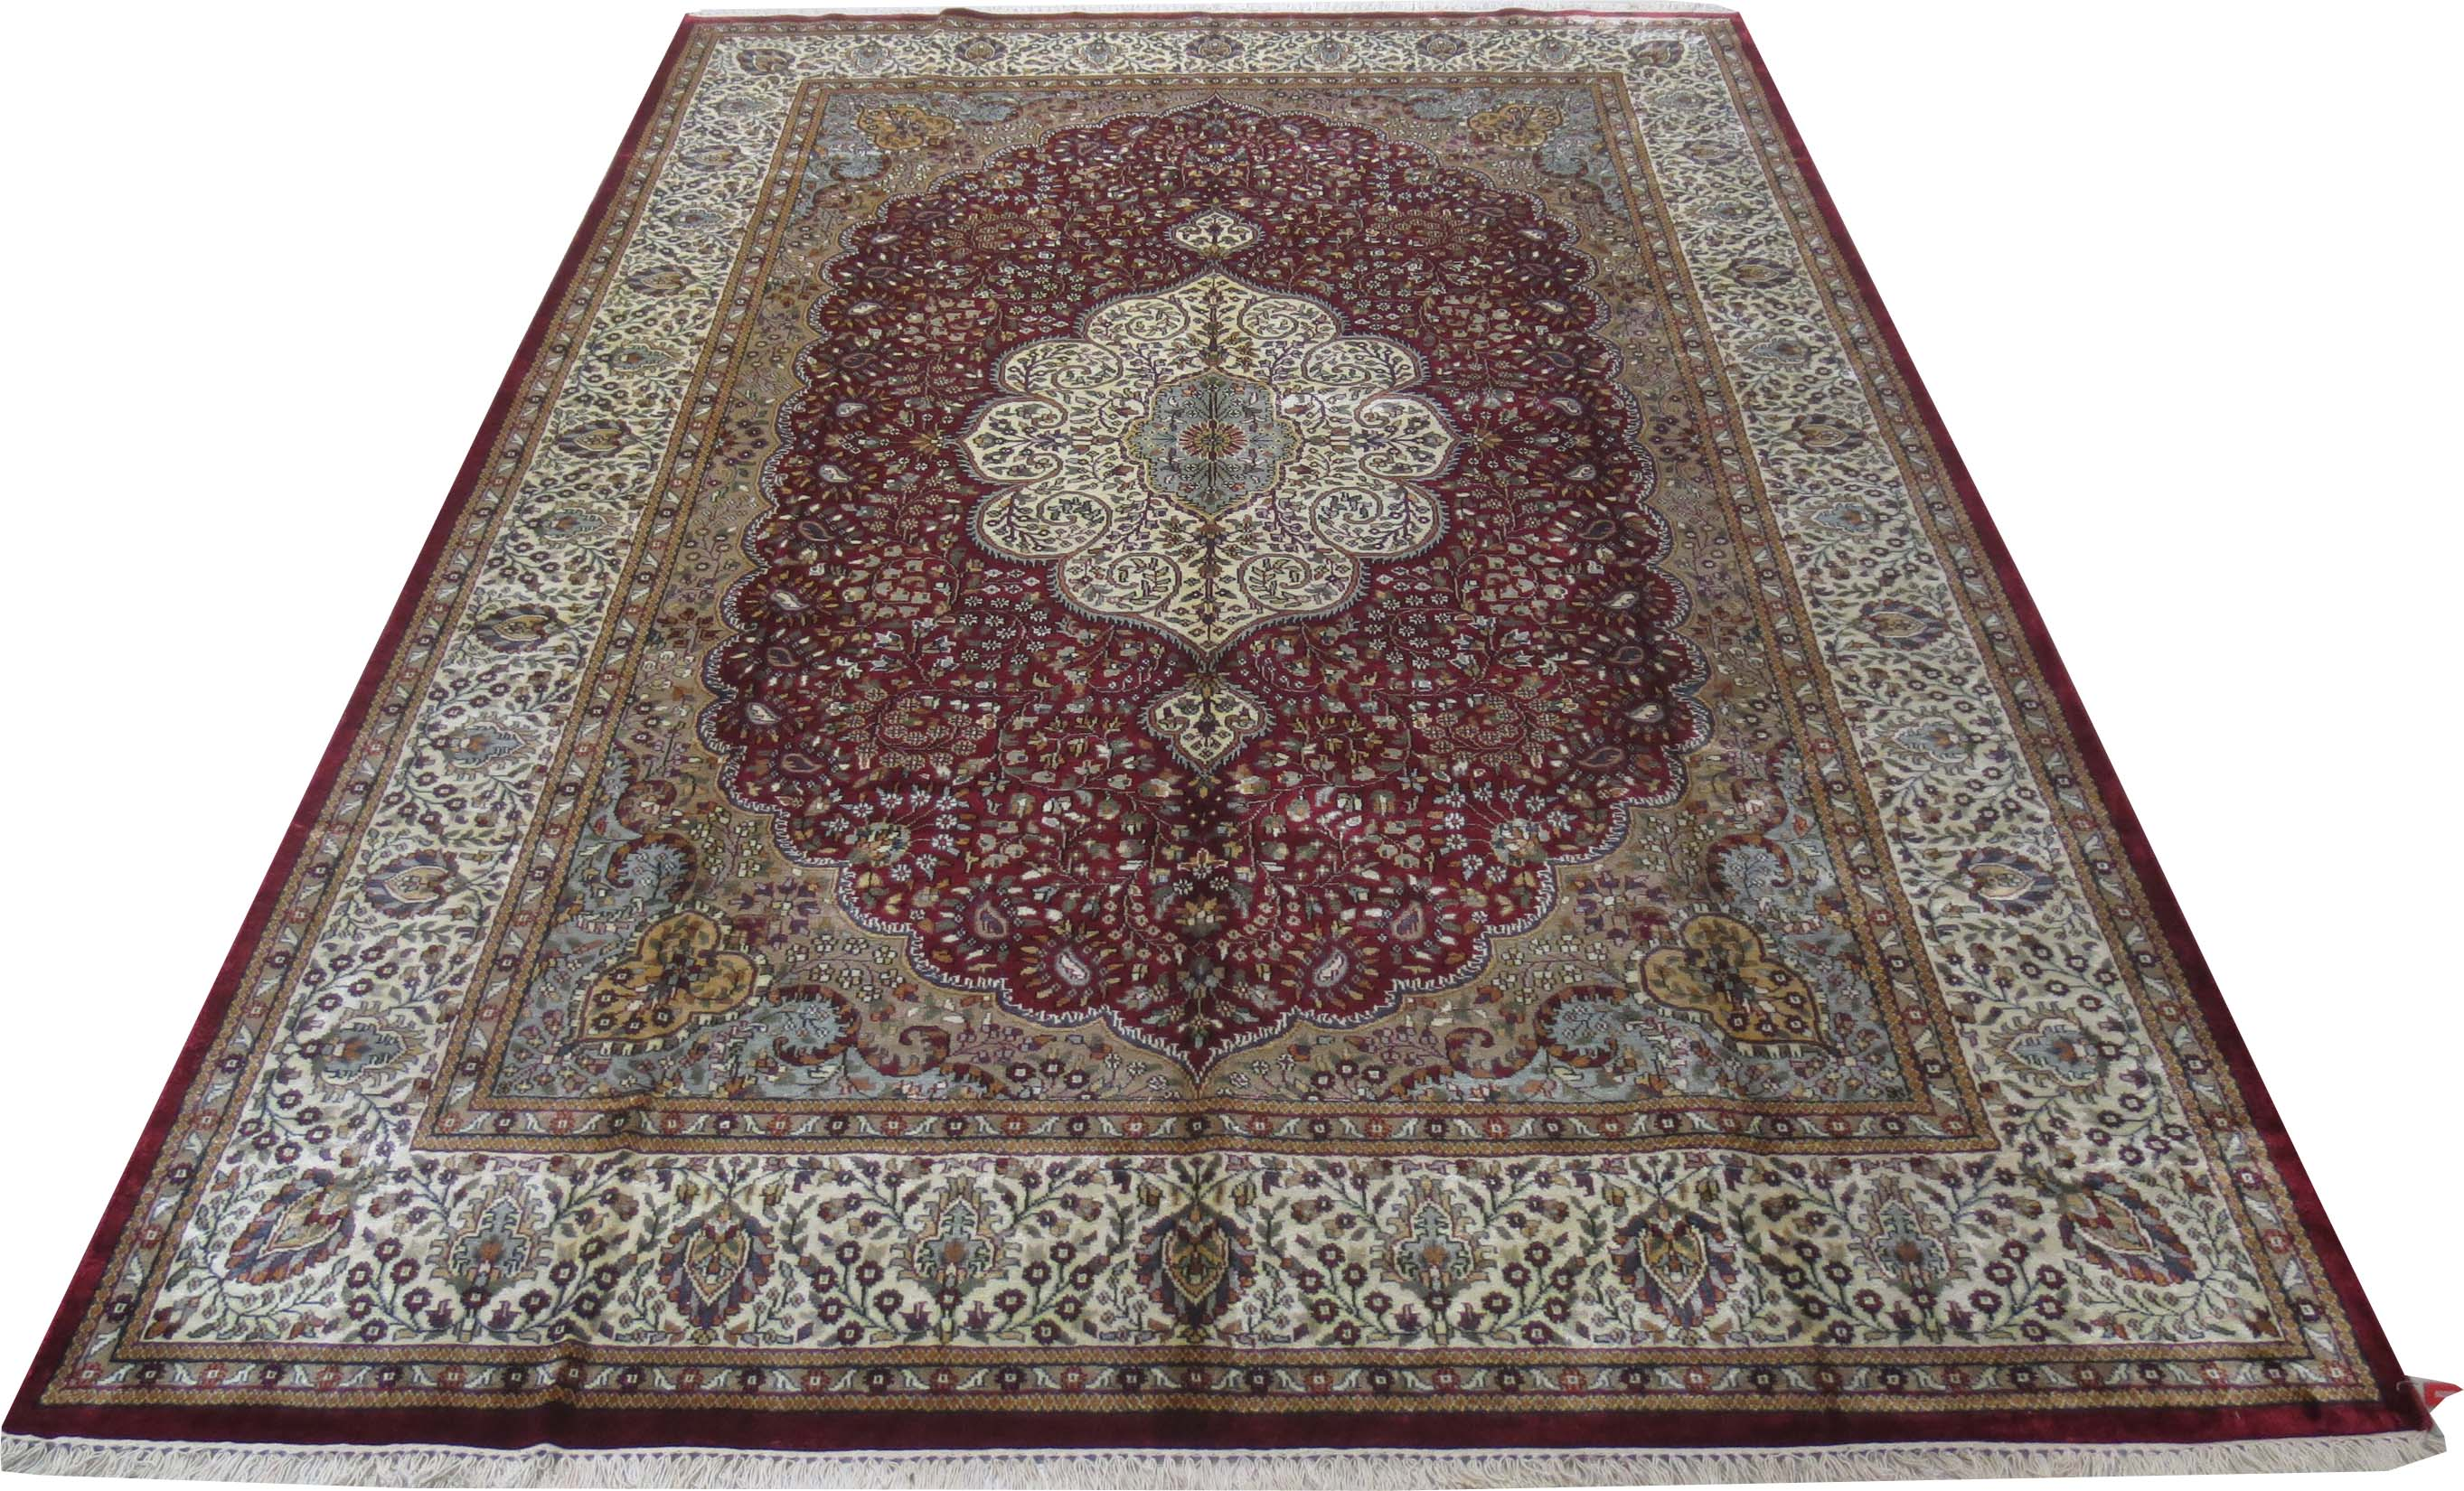 Ideal home decor rugs hand knotted rug 8 39 x 11 39 art silk for Home decorators rug sale